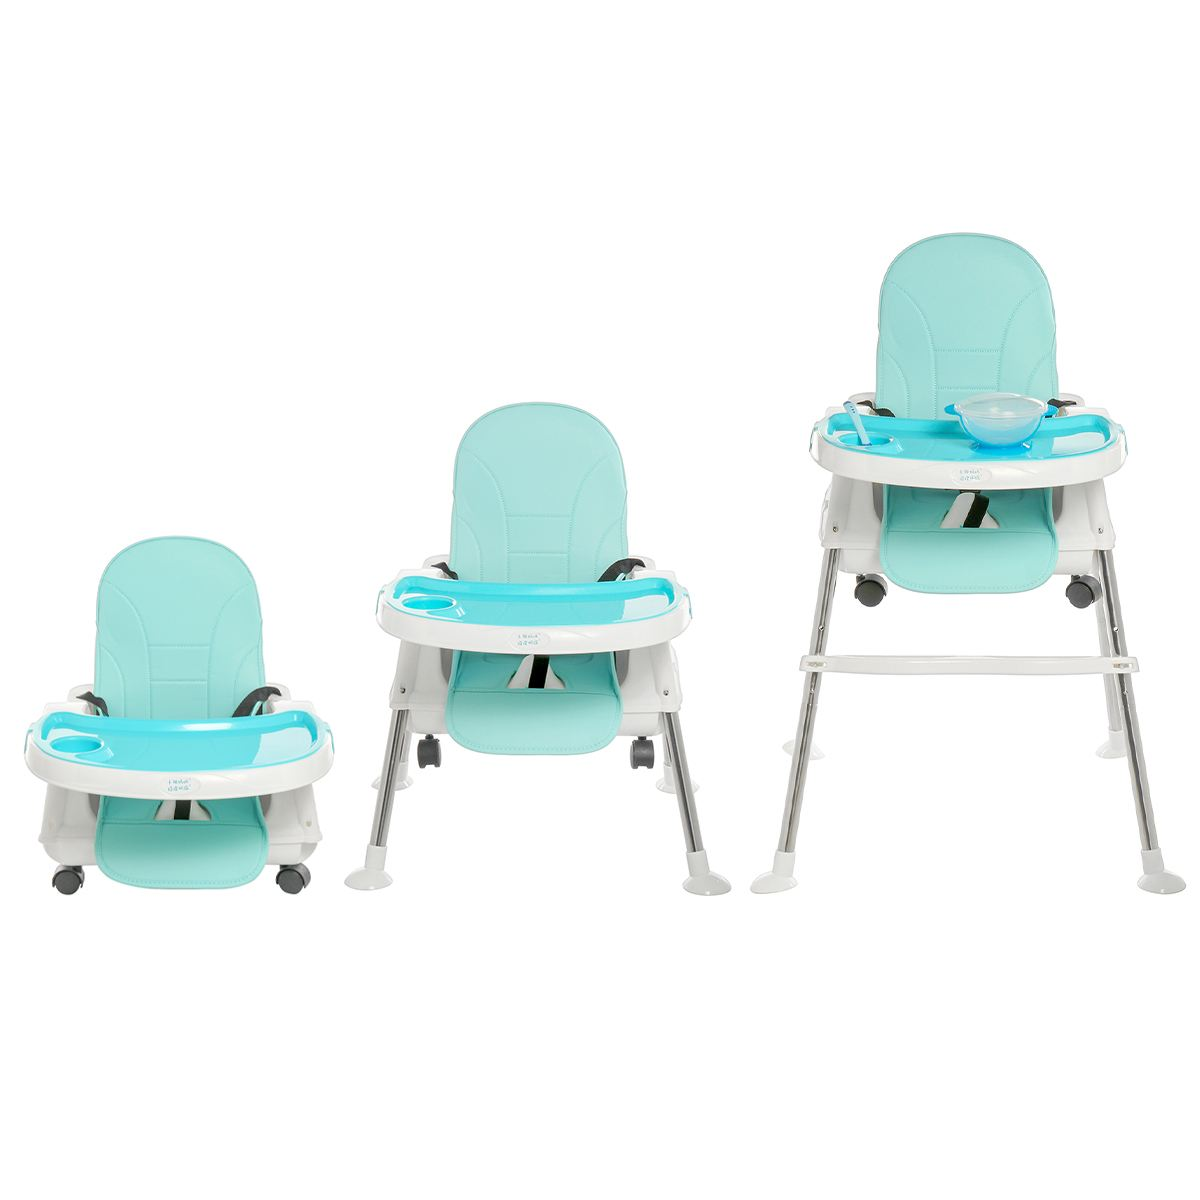 3 in 1 Adjustable Baby Comfortable High Chair Safe Feeding Dinner Table highchair With Universal wheel For Kids/Toddler